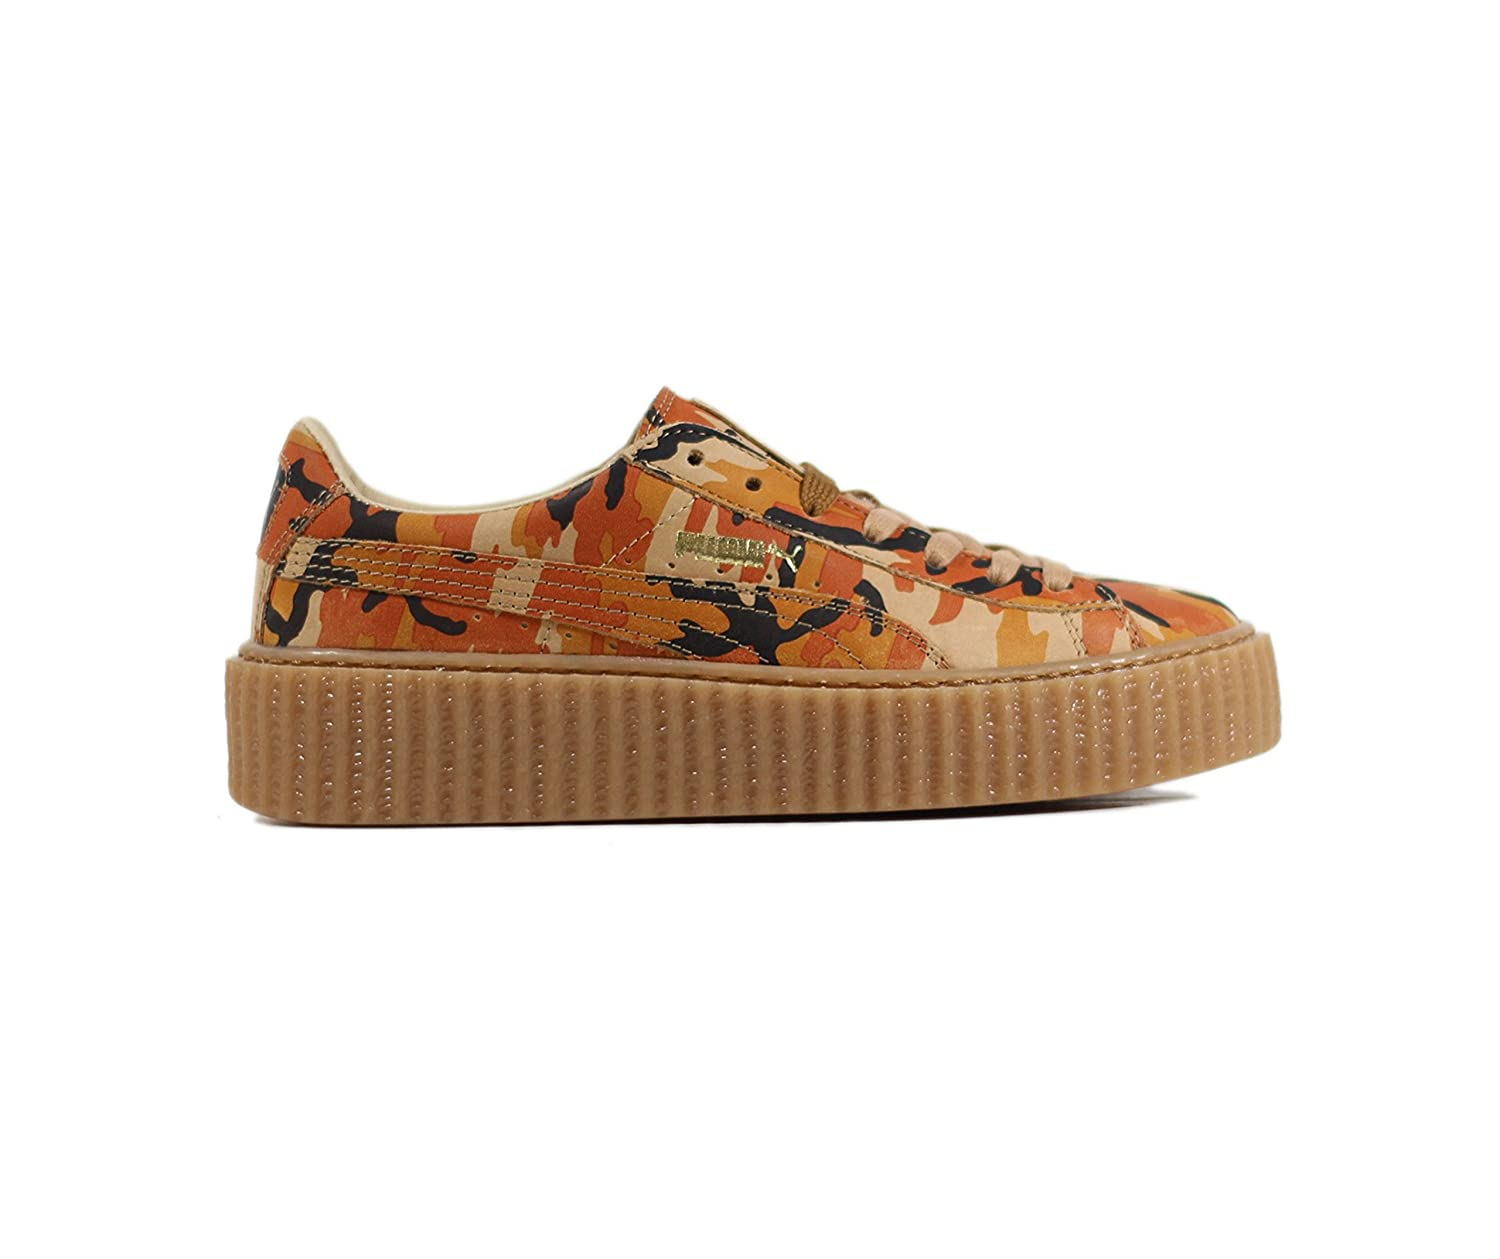 the best attitude 14c12 00a90 Puma Womens Suede Creepers Size 8.5 CAMO Rihanna Orange ...